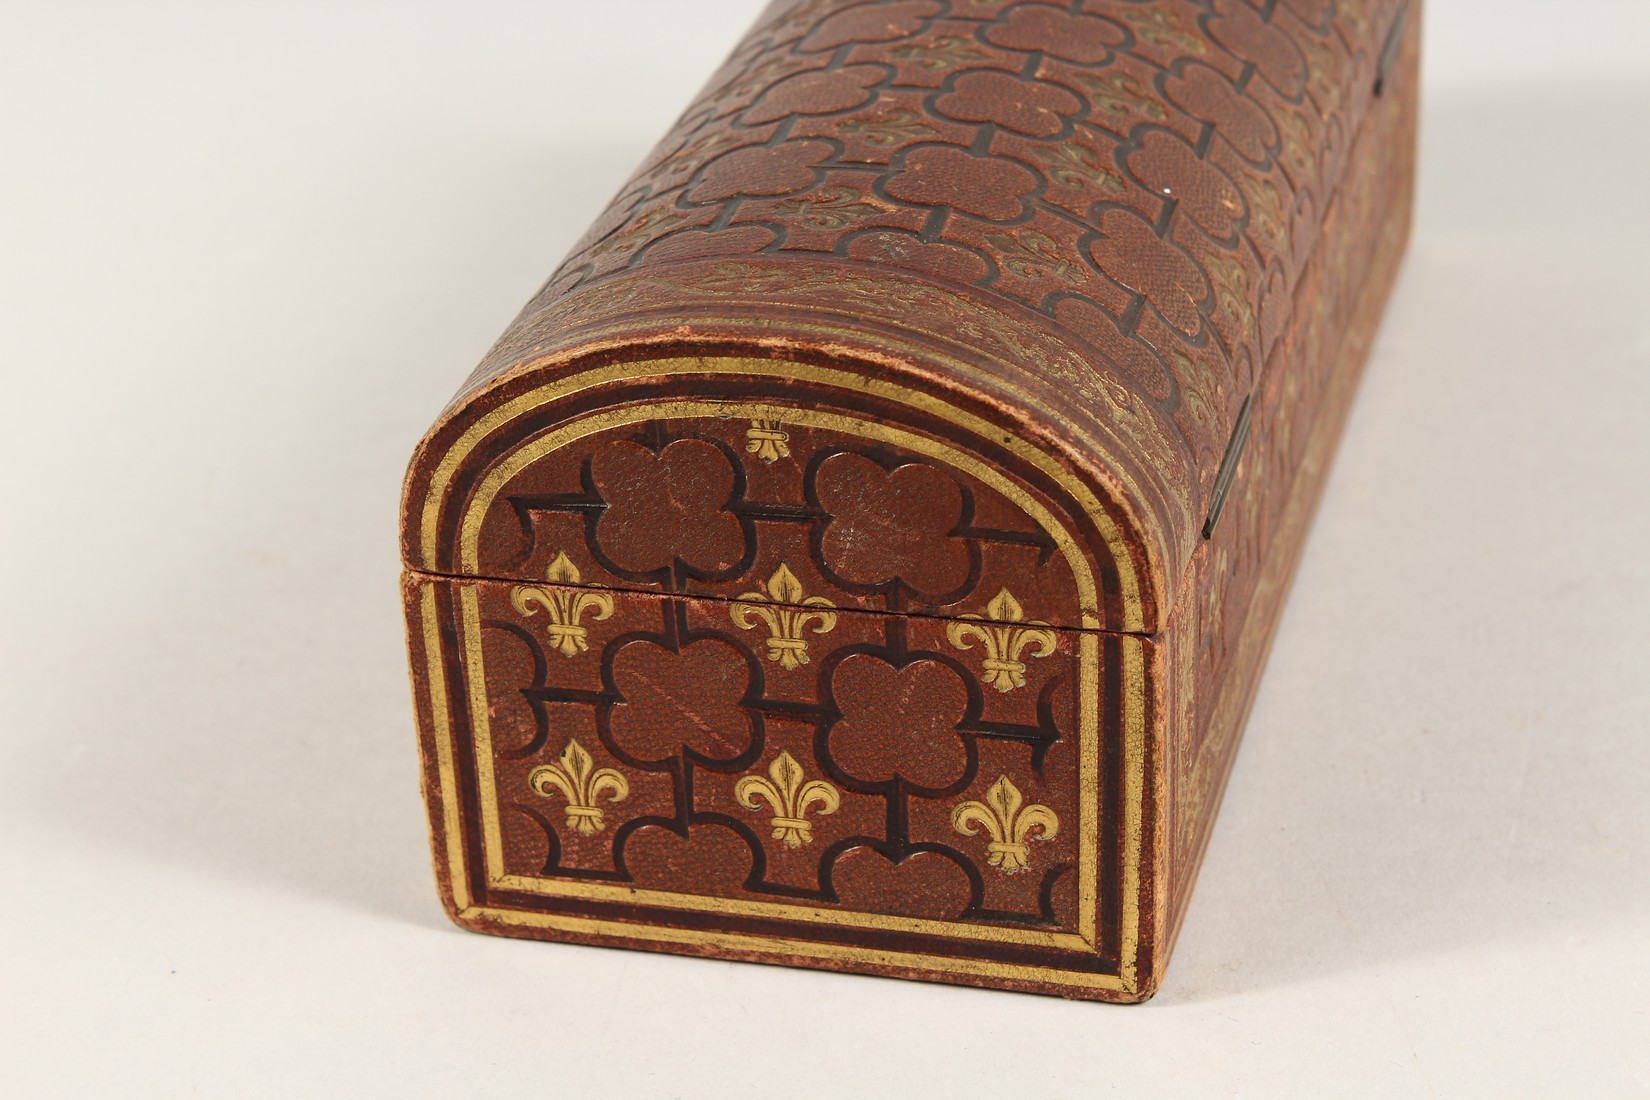 A FRENCH FLEUR D LYS DOMED LEATHER BOX 9.5ins long - Image 4 of 5